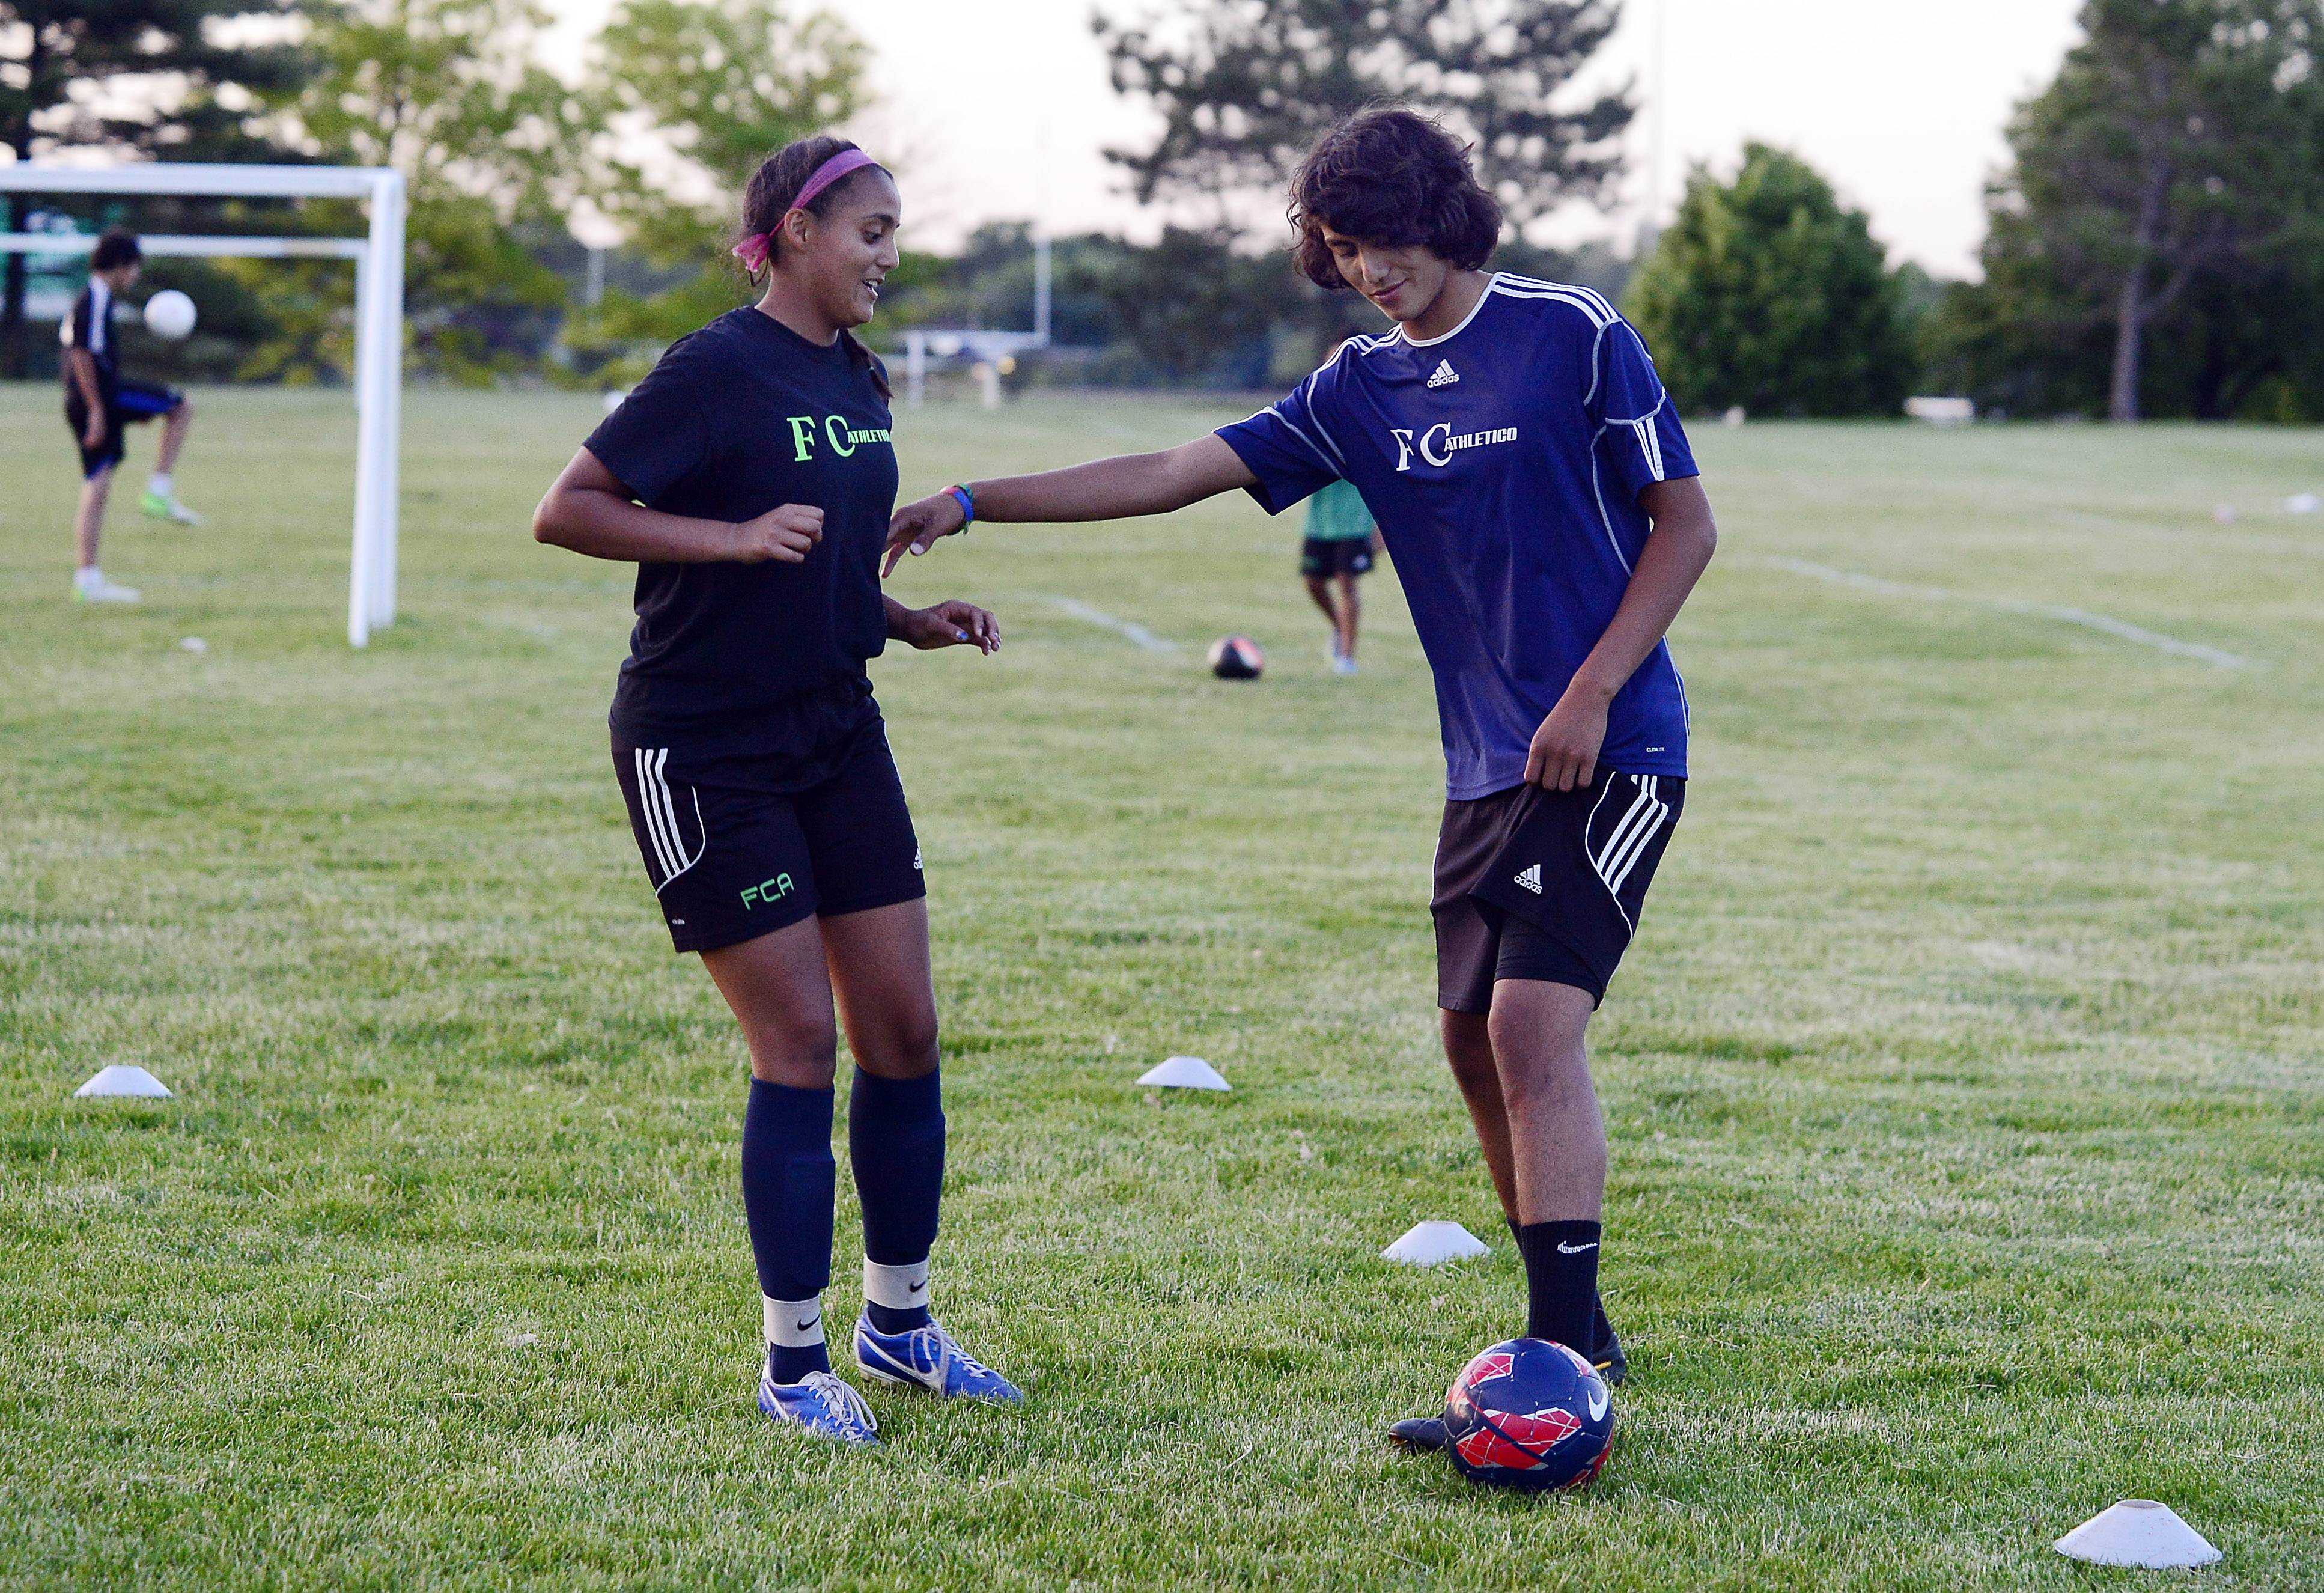 Sibling rivalry is one of the reasons Luis, 15, and Alondra Arreola, 14, of Wheeling have developed into top soccer players. Both have their sights set on professional soccer careers and hope to one day represent the U.S. or Mexico in a World Cup.